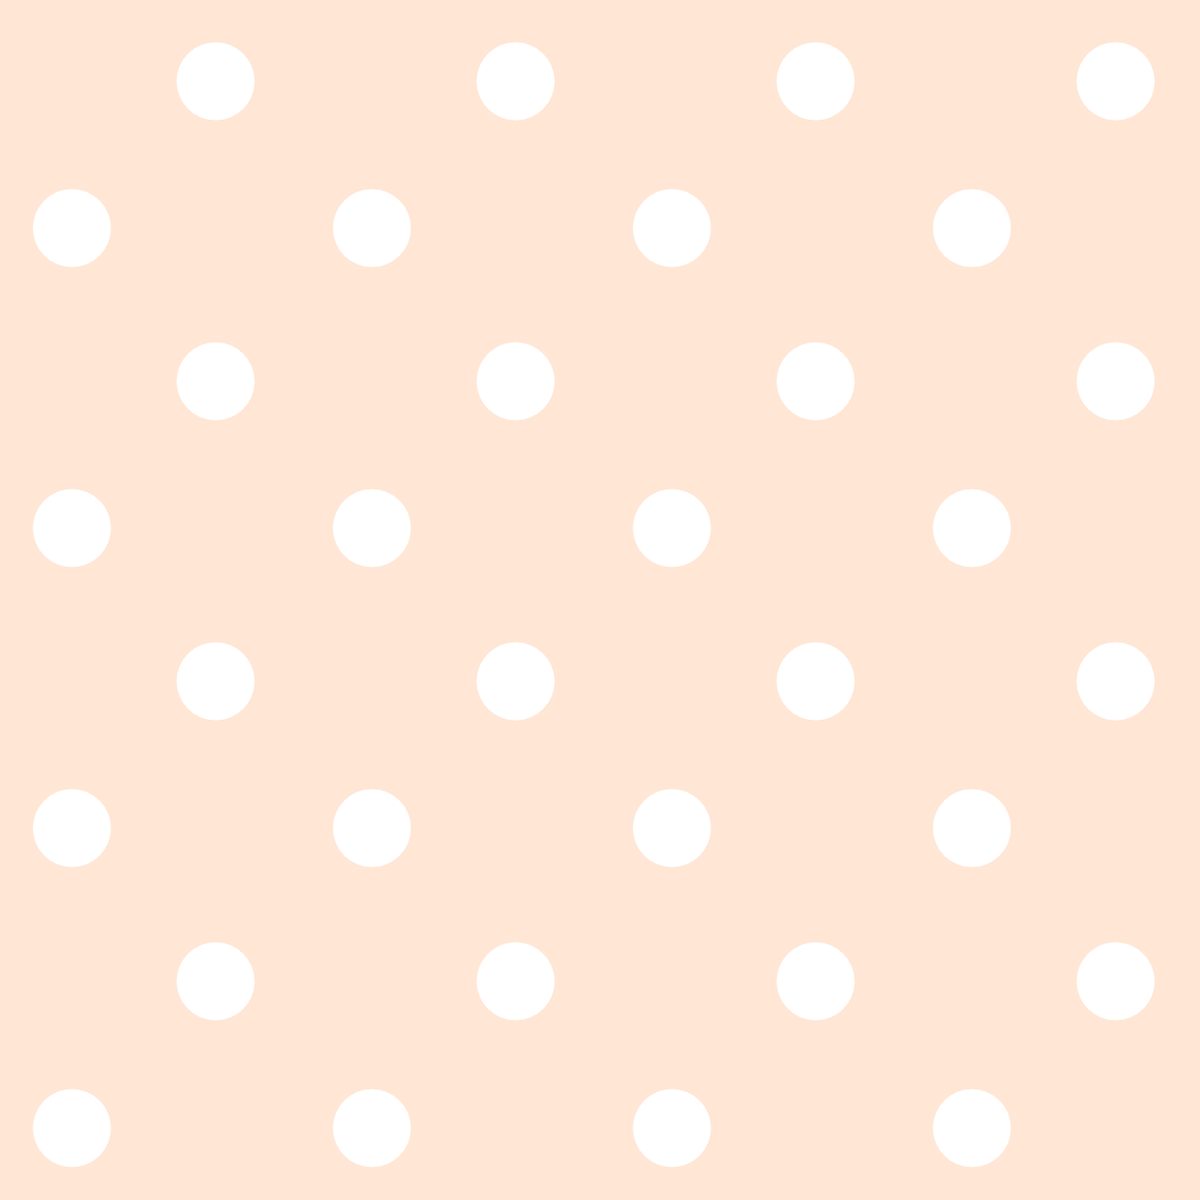 Free Digital Pastel Colored Scrapbooking Papers